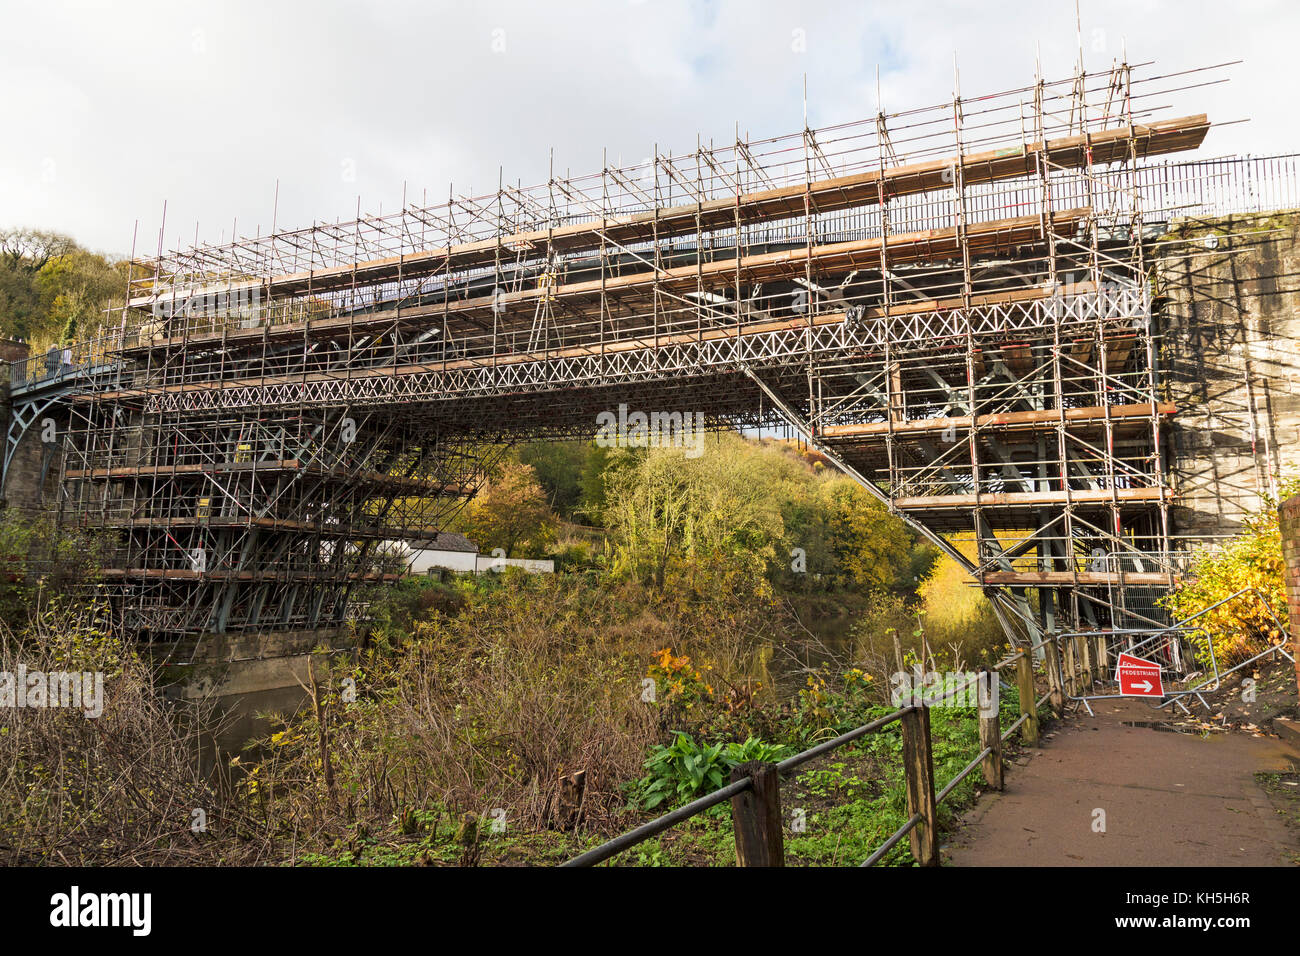 The famous Iron Bridge in the town of Ironbridge in Shropshire, England, covered in scaffolding as part of a £1.2m - Stock Image